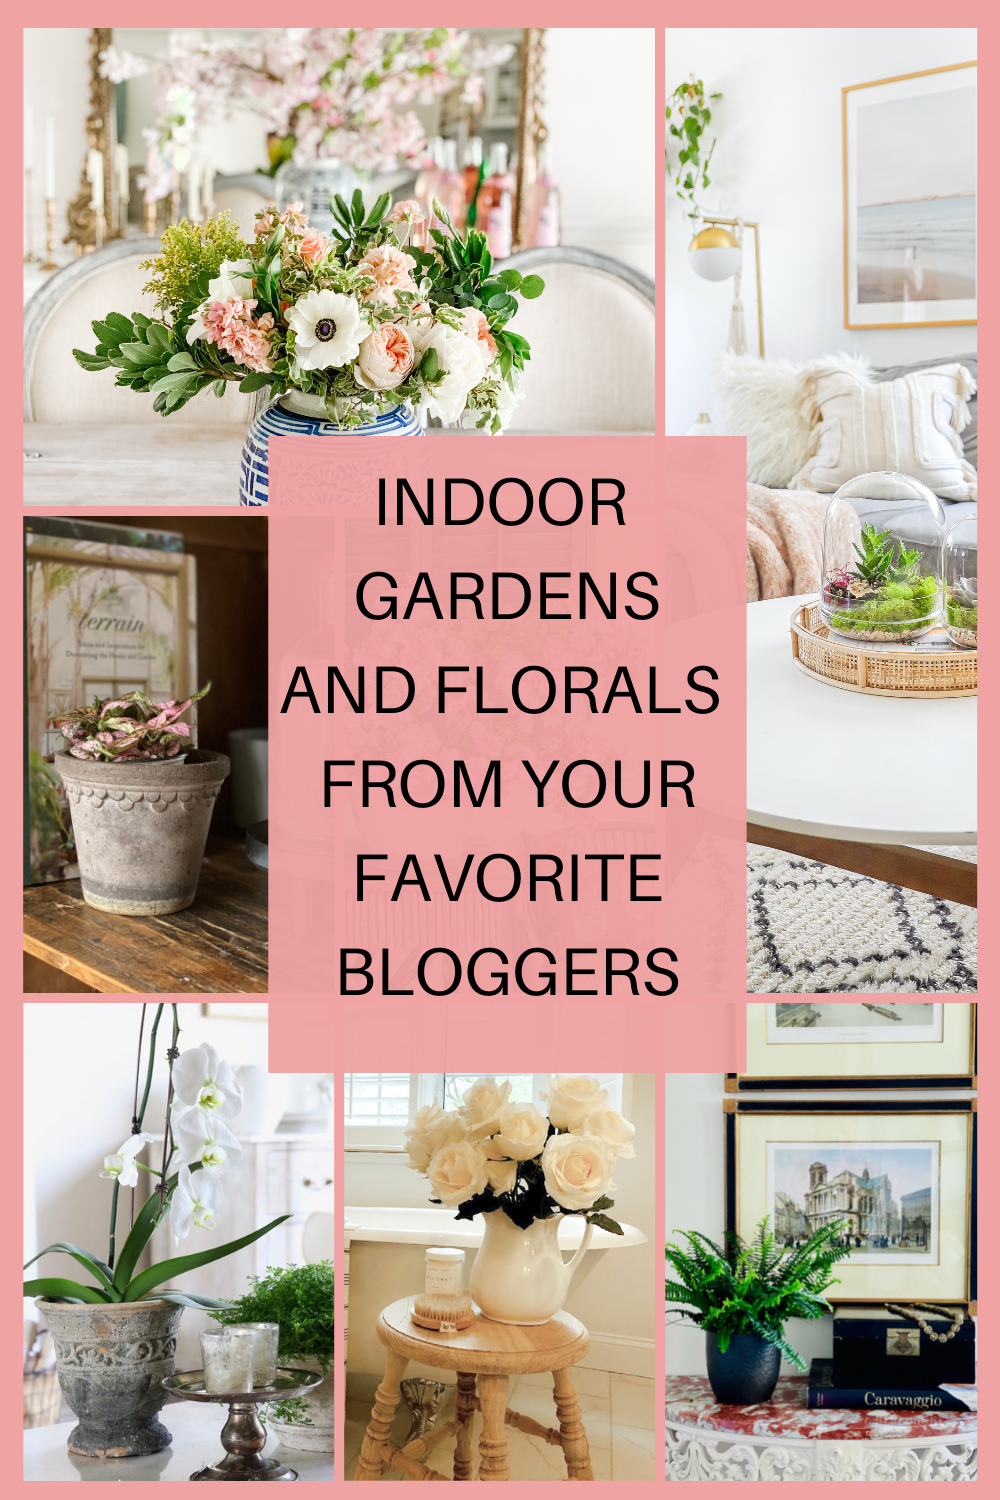 Indoor gardens and florals from your favorite bloggers - Hello Lovely Studio. #flowerdecor #florals #houseplants